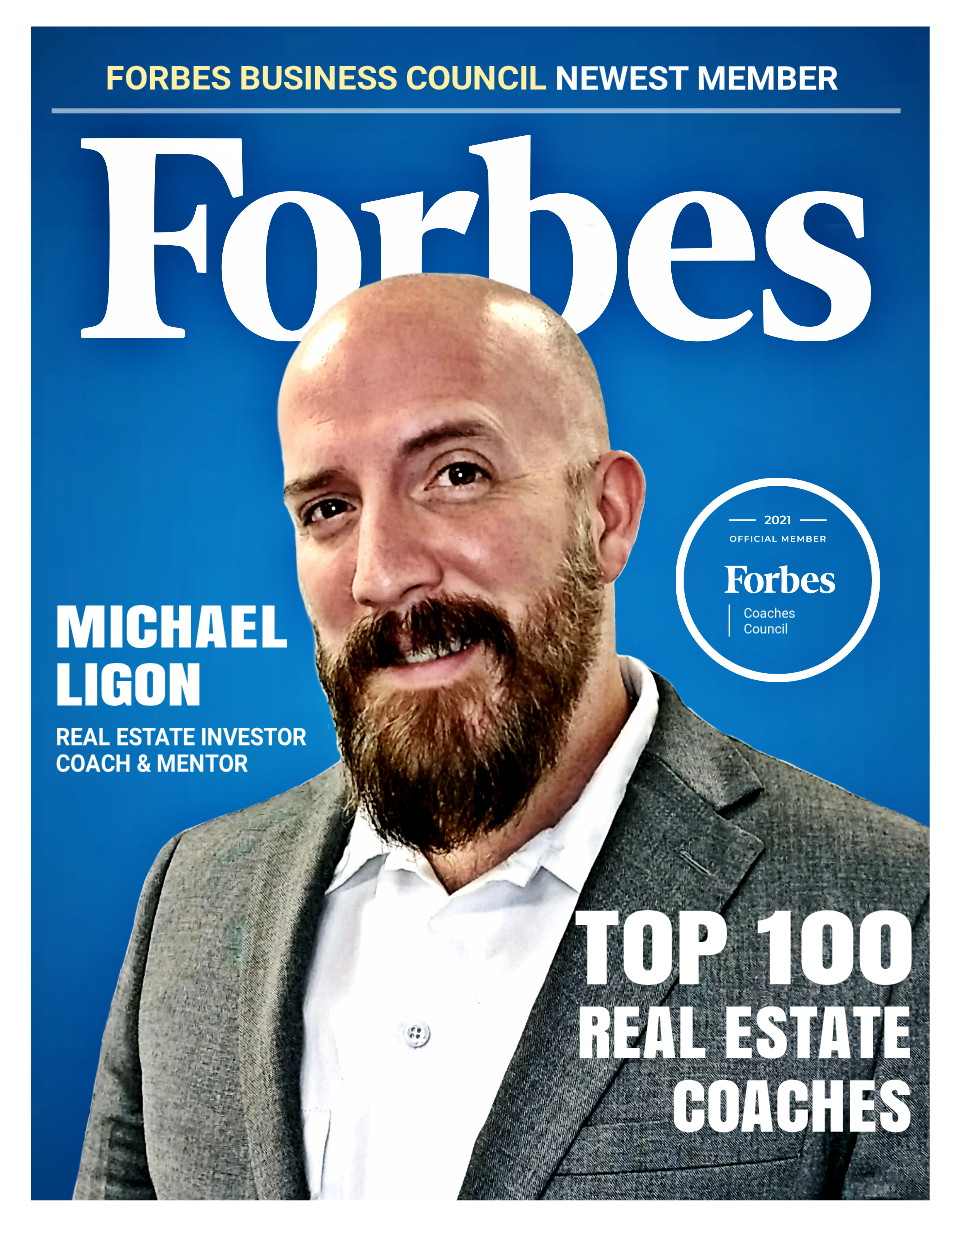 Michael Ligon of The Ligon Brothers accepted into Forbes Business Council